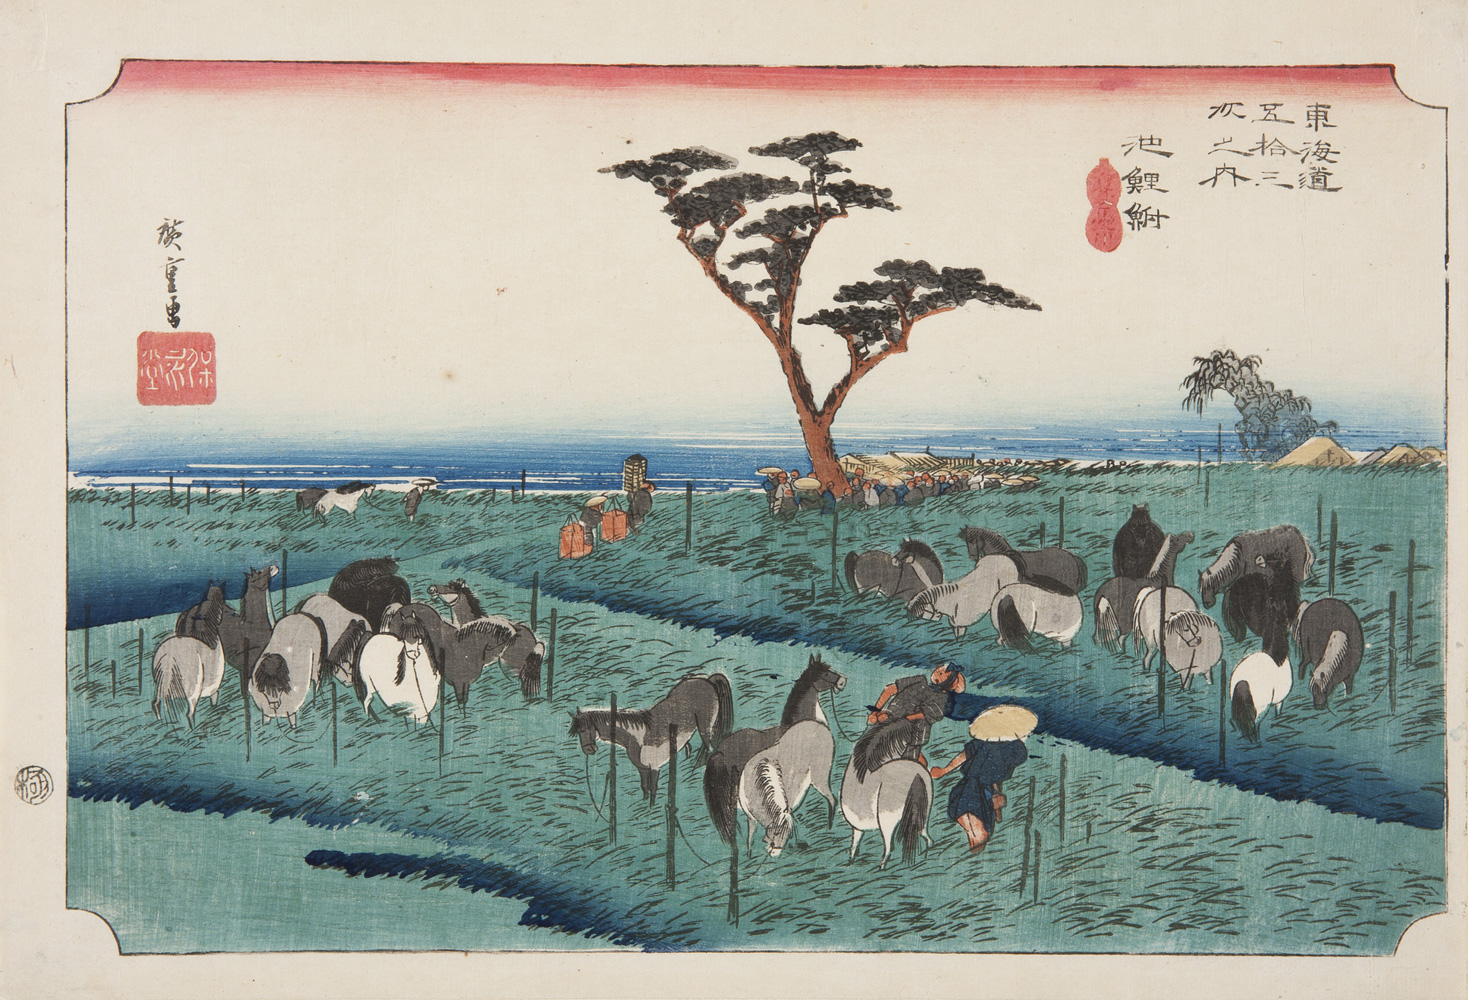 Japanese print of a landscape. Many horses are tied up to posts in a field and men tend to them. A tree is in the centre and behind it we see buildings and a huddle of people.